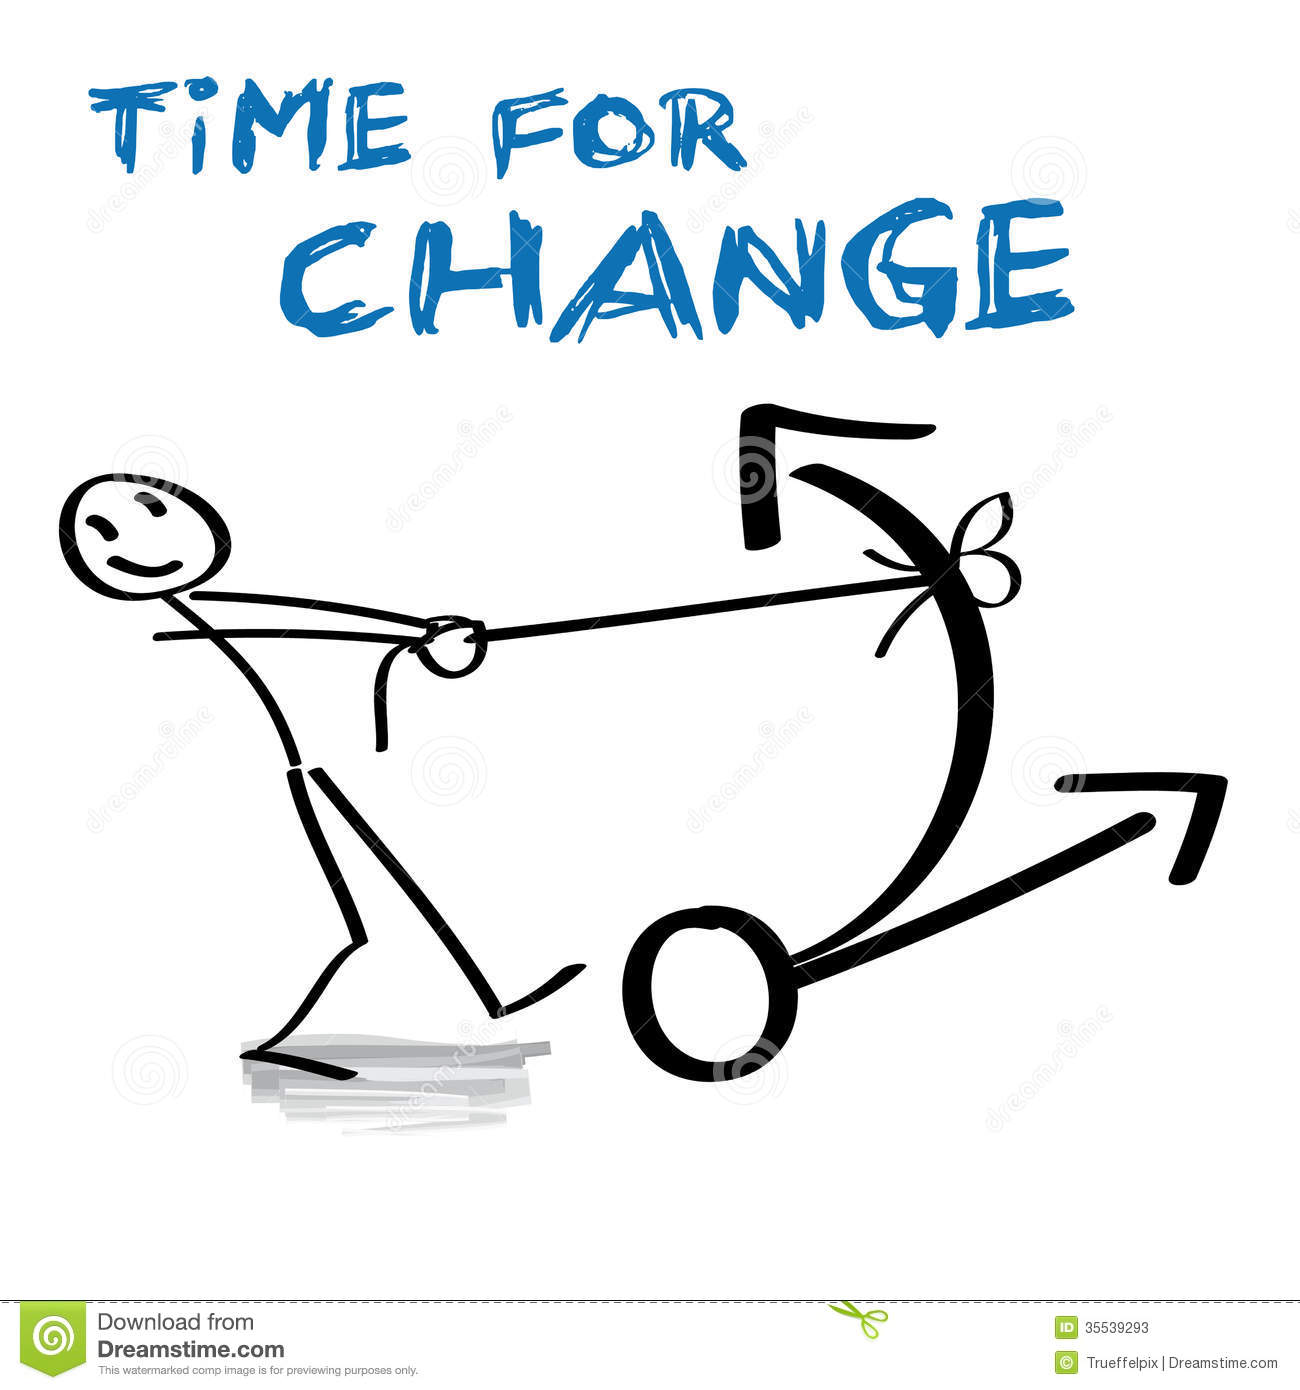 its time for a change essay Newtonian, classical physics (non-relative), declared time independent of matter and independent of its variations in its material change, with a clear causal connection (earlier-later-relation) to equally go off in every space of the universe at the same time.